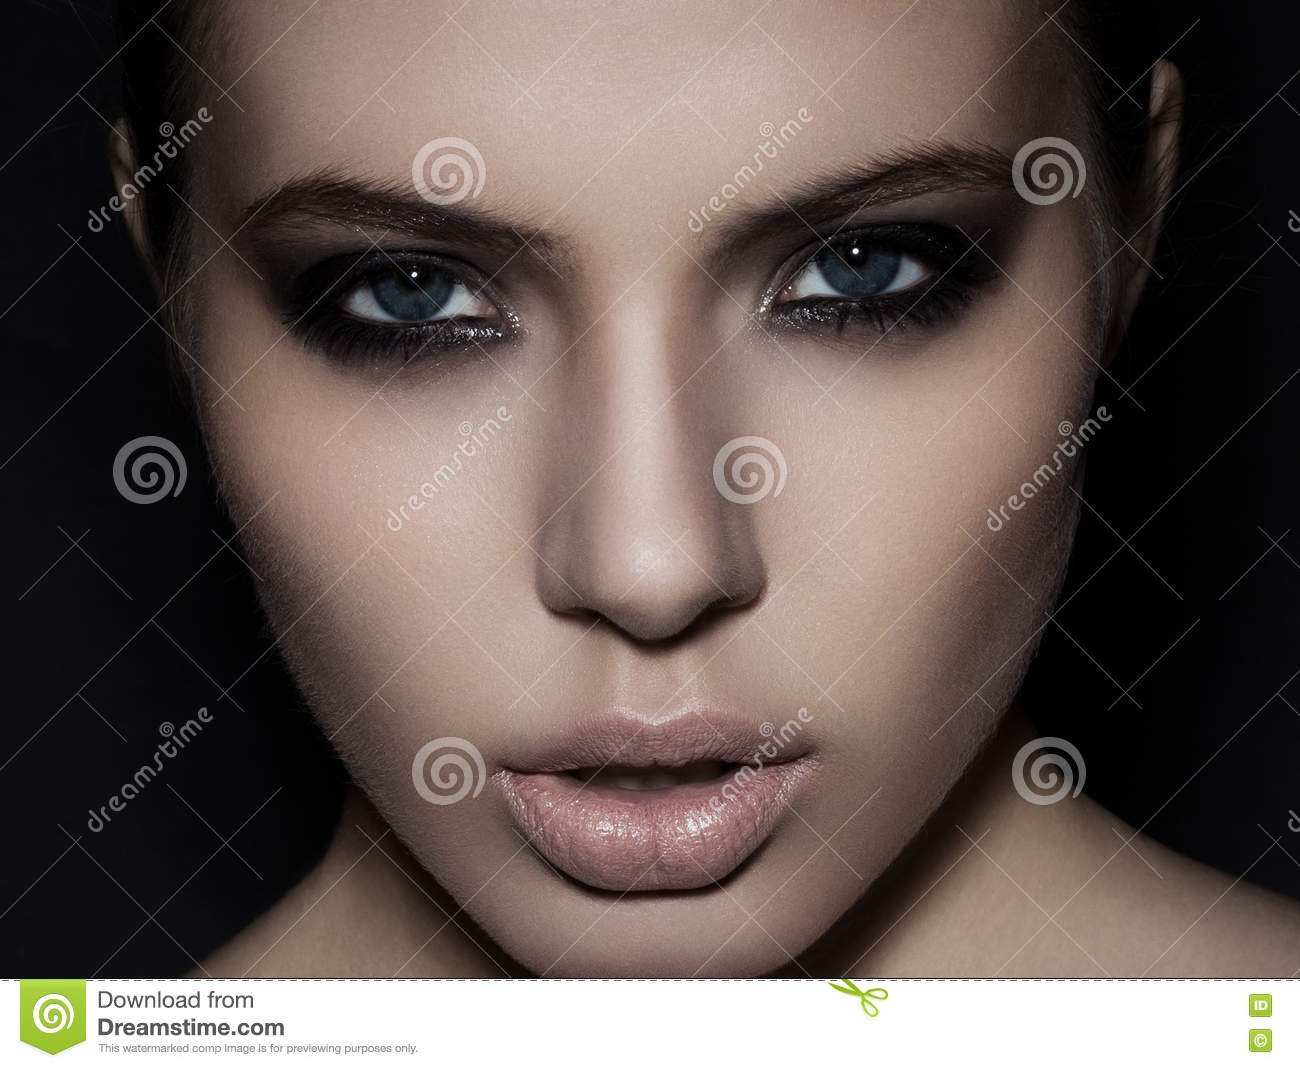 Beautiful Woman Model Smokey Eyes Makeup Closeup On Black Stock Photo Image Of Female Attractive 77828660